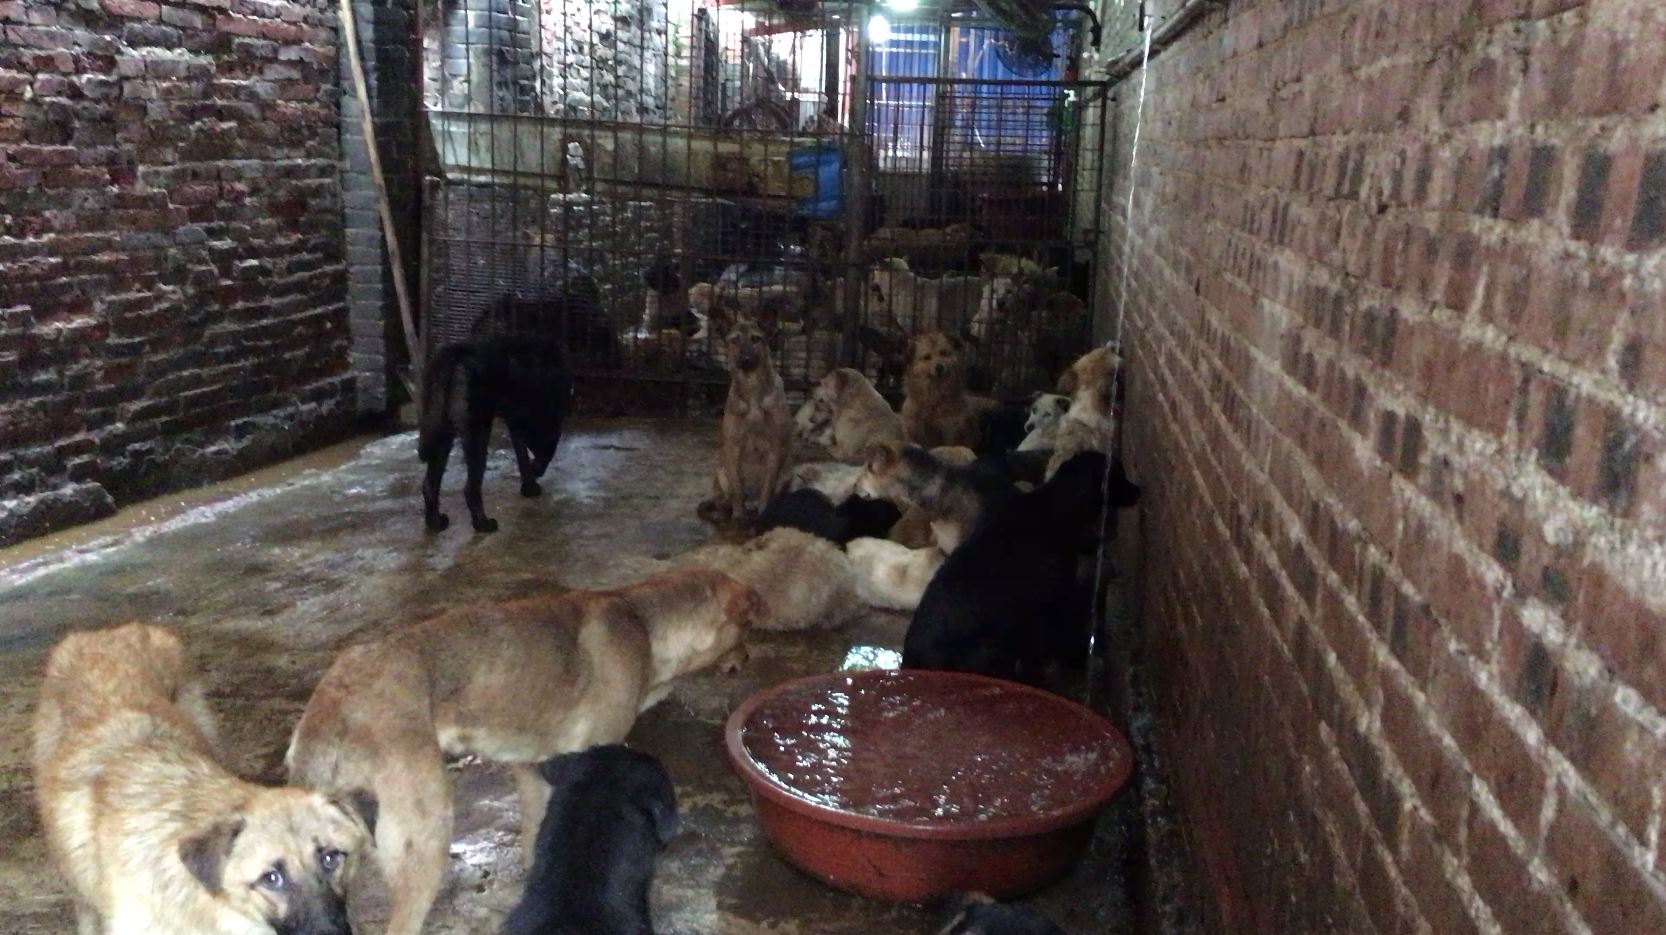 Dogs are kept in filthy conditions, many sick and in desperate need of veterinary care.